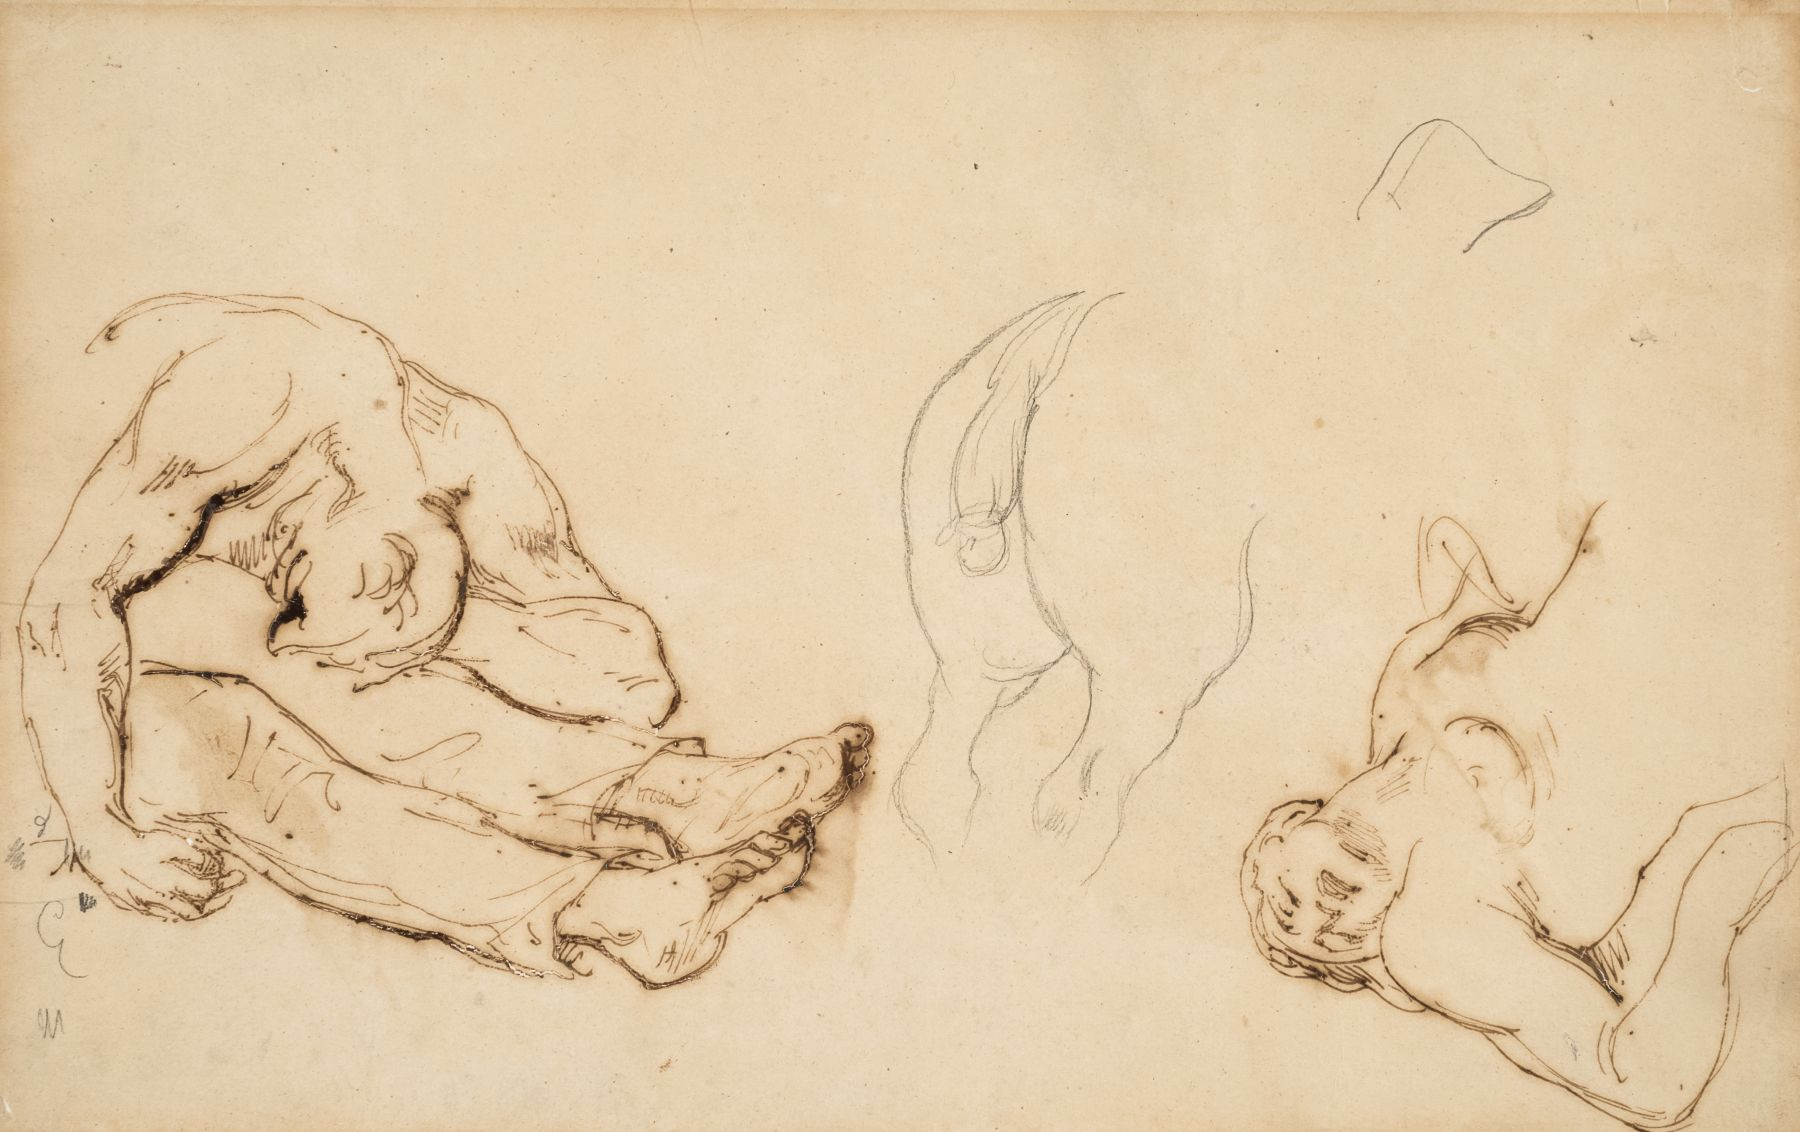 Theodore Gericault, Two Figures for Raft of Medusa and a Horse, Pen and ink with pencil on paper 8 1/8 x 13 inches